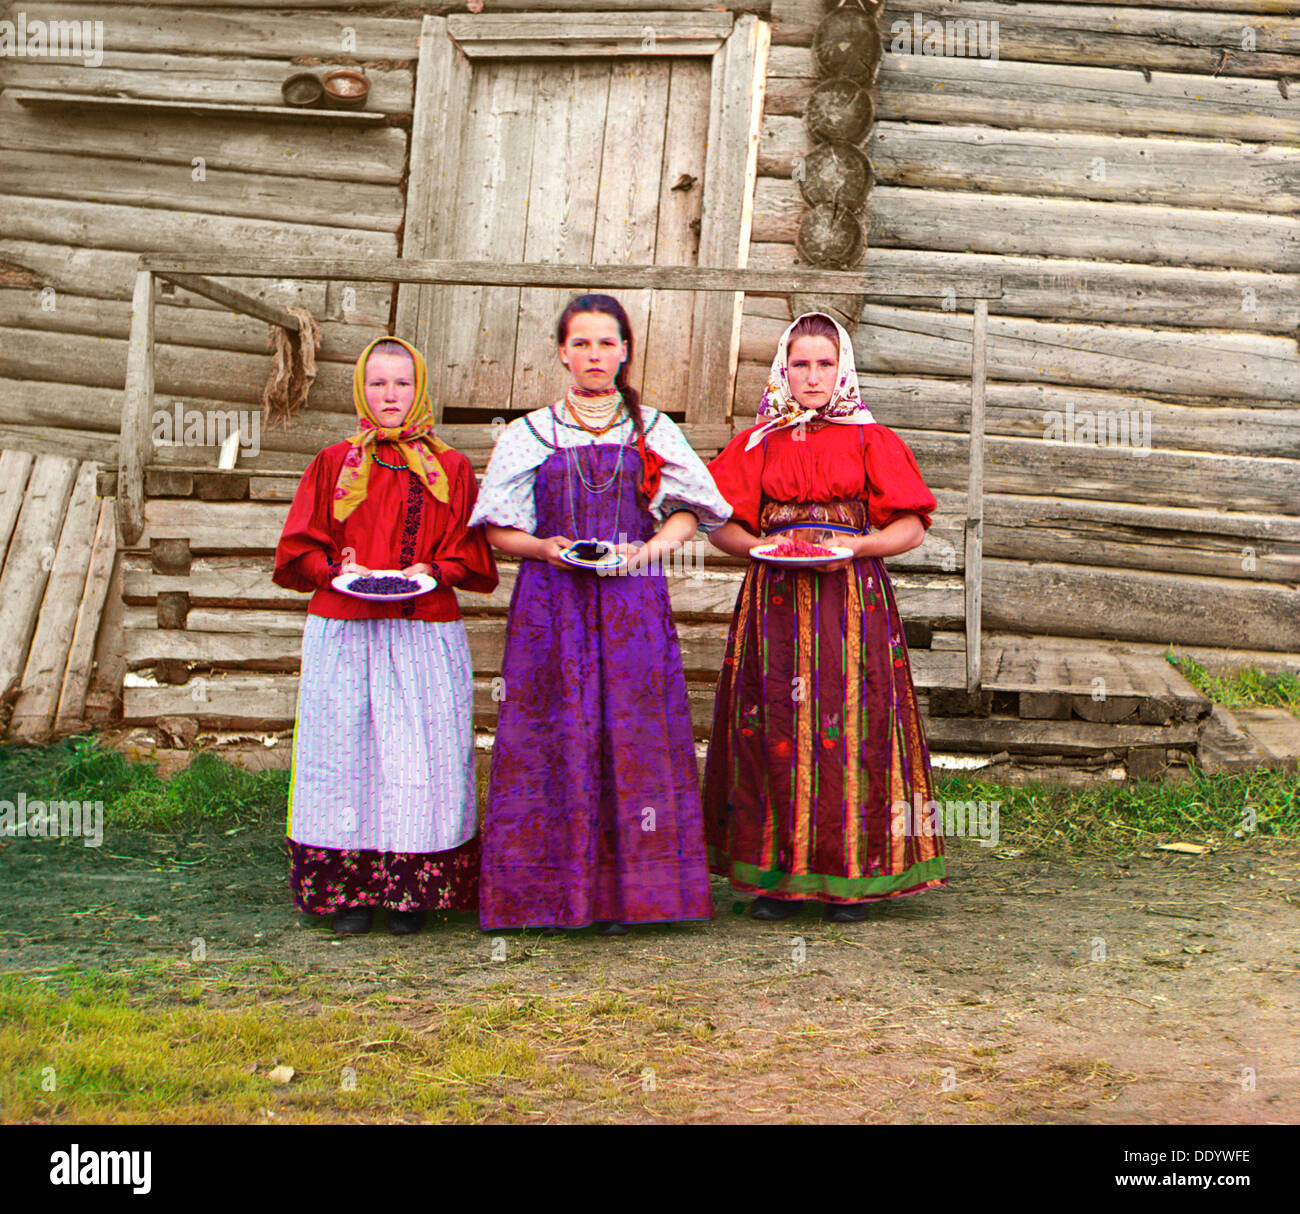 Young Russian peasant women, Sheksna River, near the small town of Kirillov, Russia, 1909. Artist: Sergey Mikhaylovich Prokudin- - Stock Image